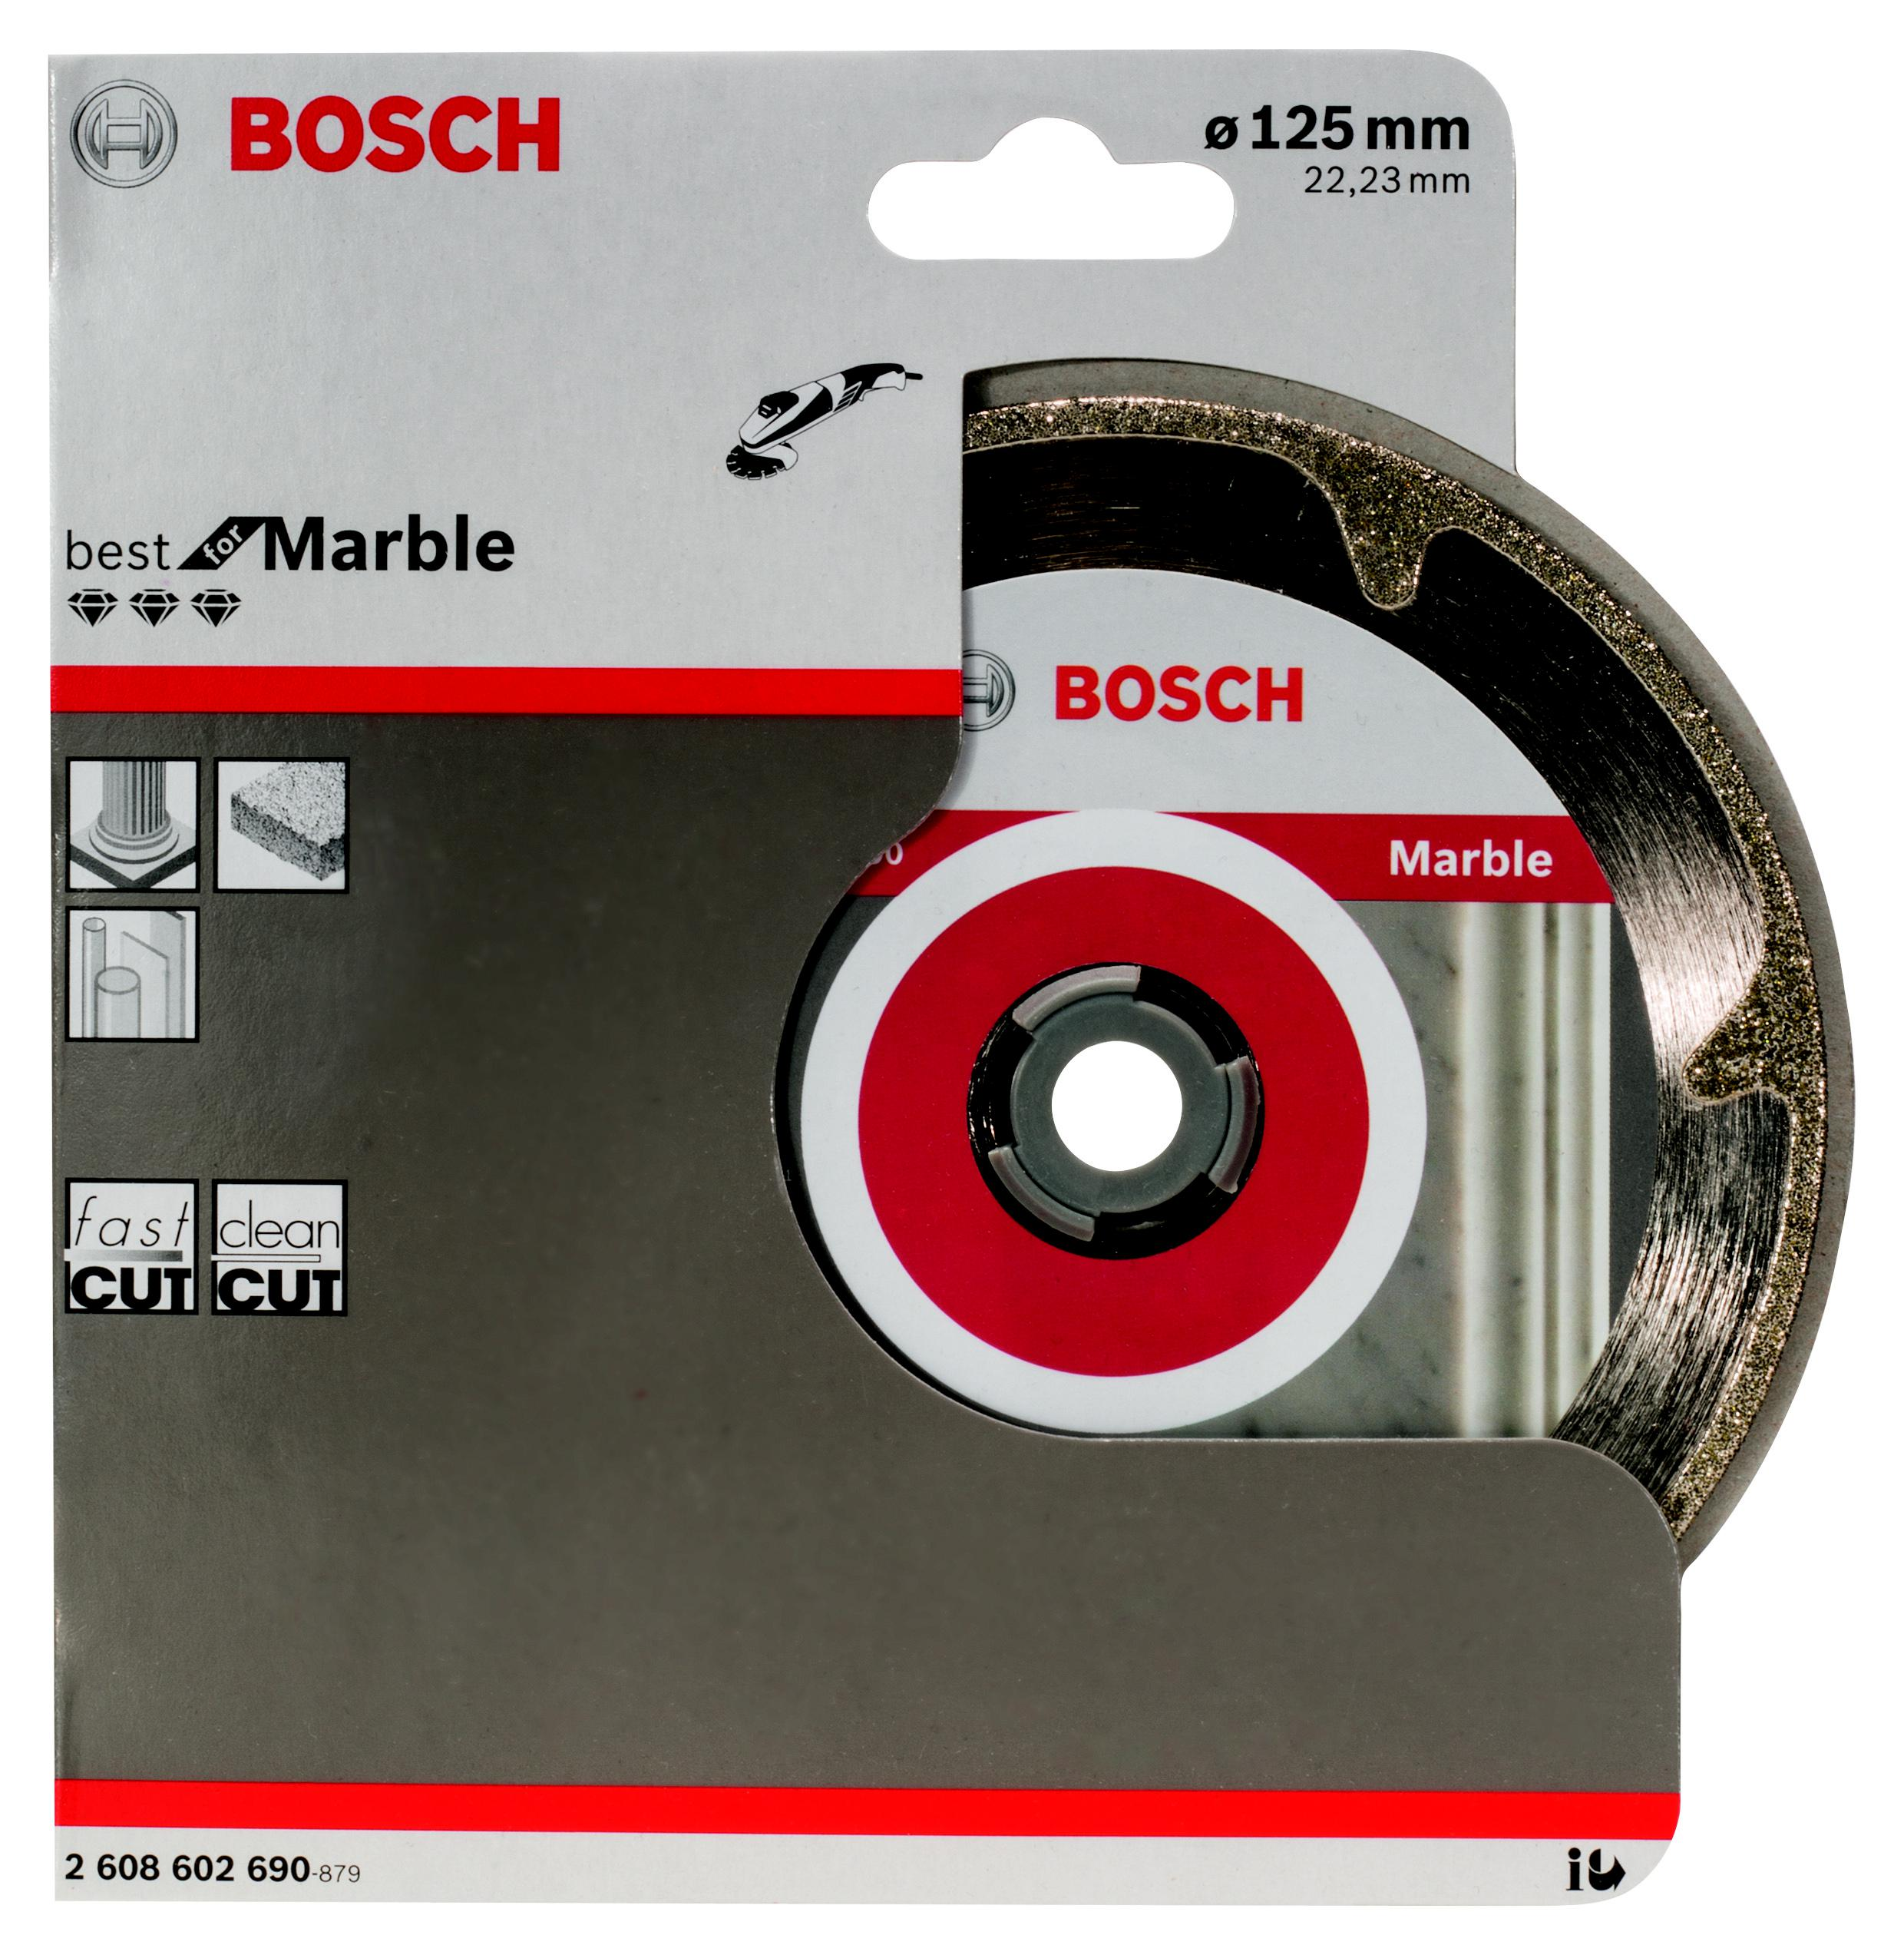 Круг алмазный Bosch Best for marble 125x22 сегмент (2.608.602.690) диск отрезной алмазный турбо 125х22 2mm 20007 ottom 125x22 2mm